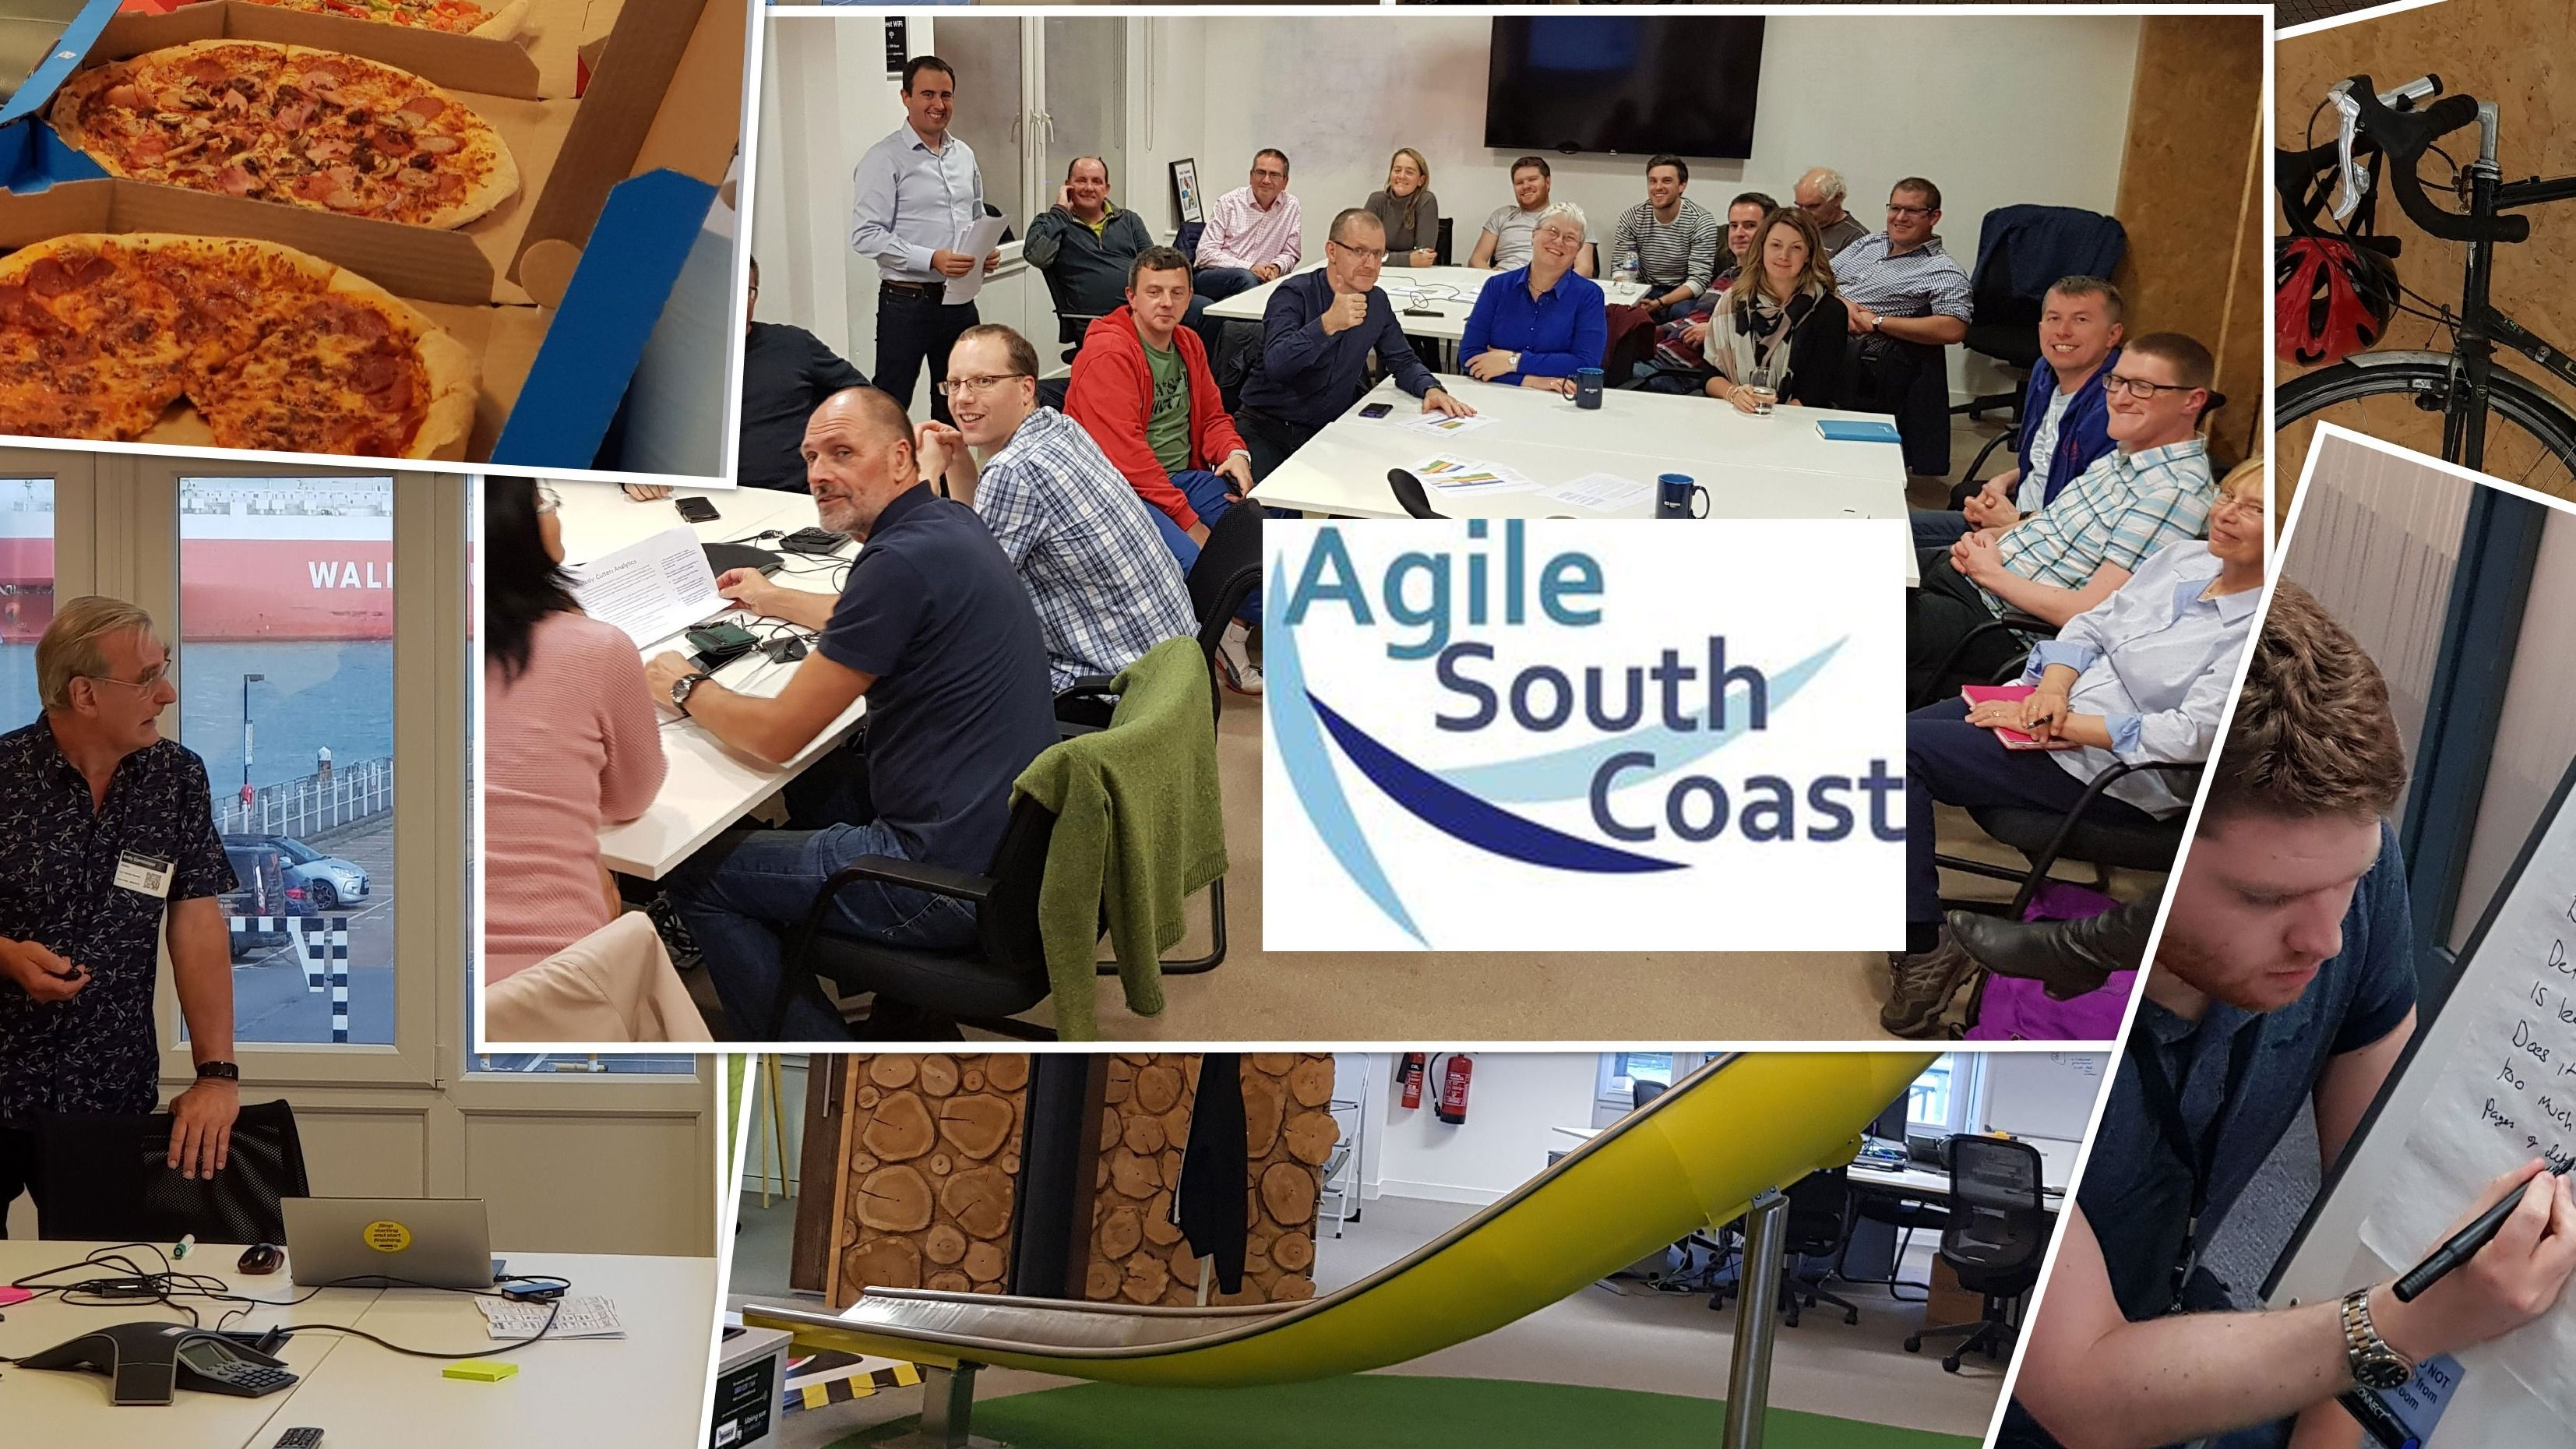 Agile South Coast in Southampton